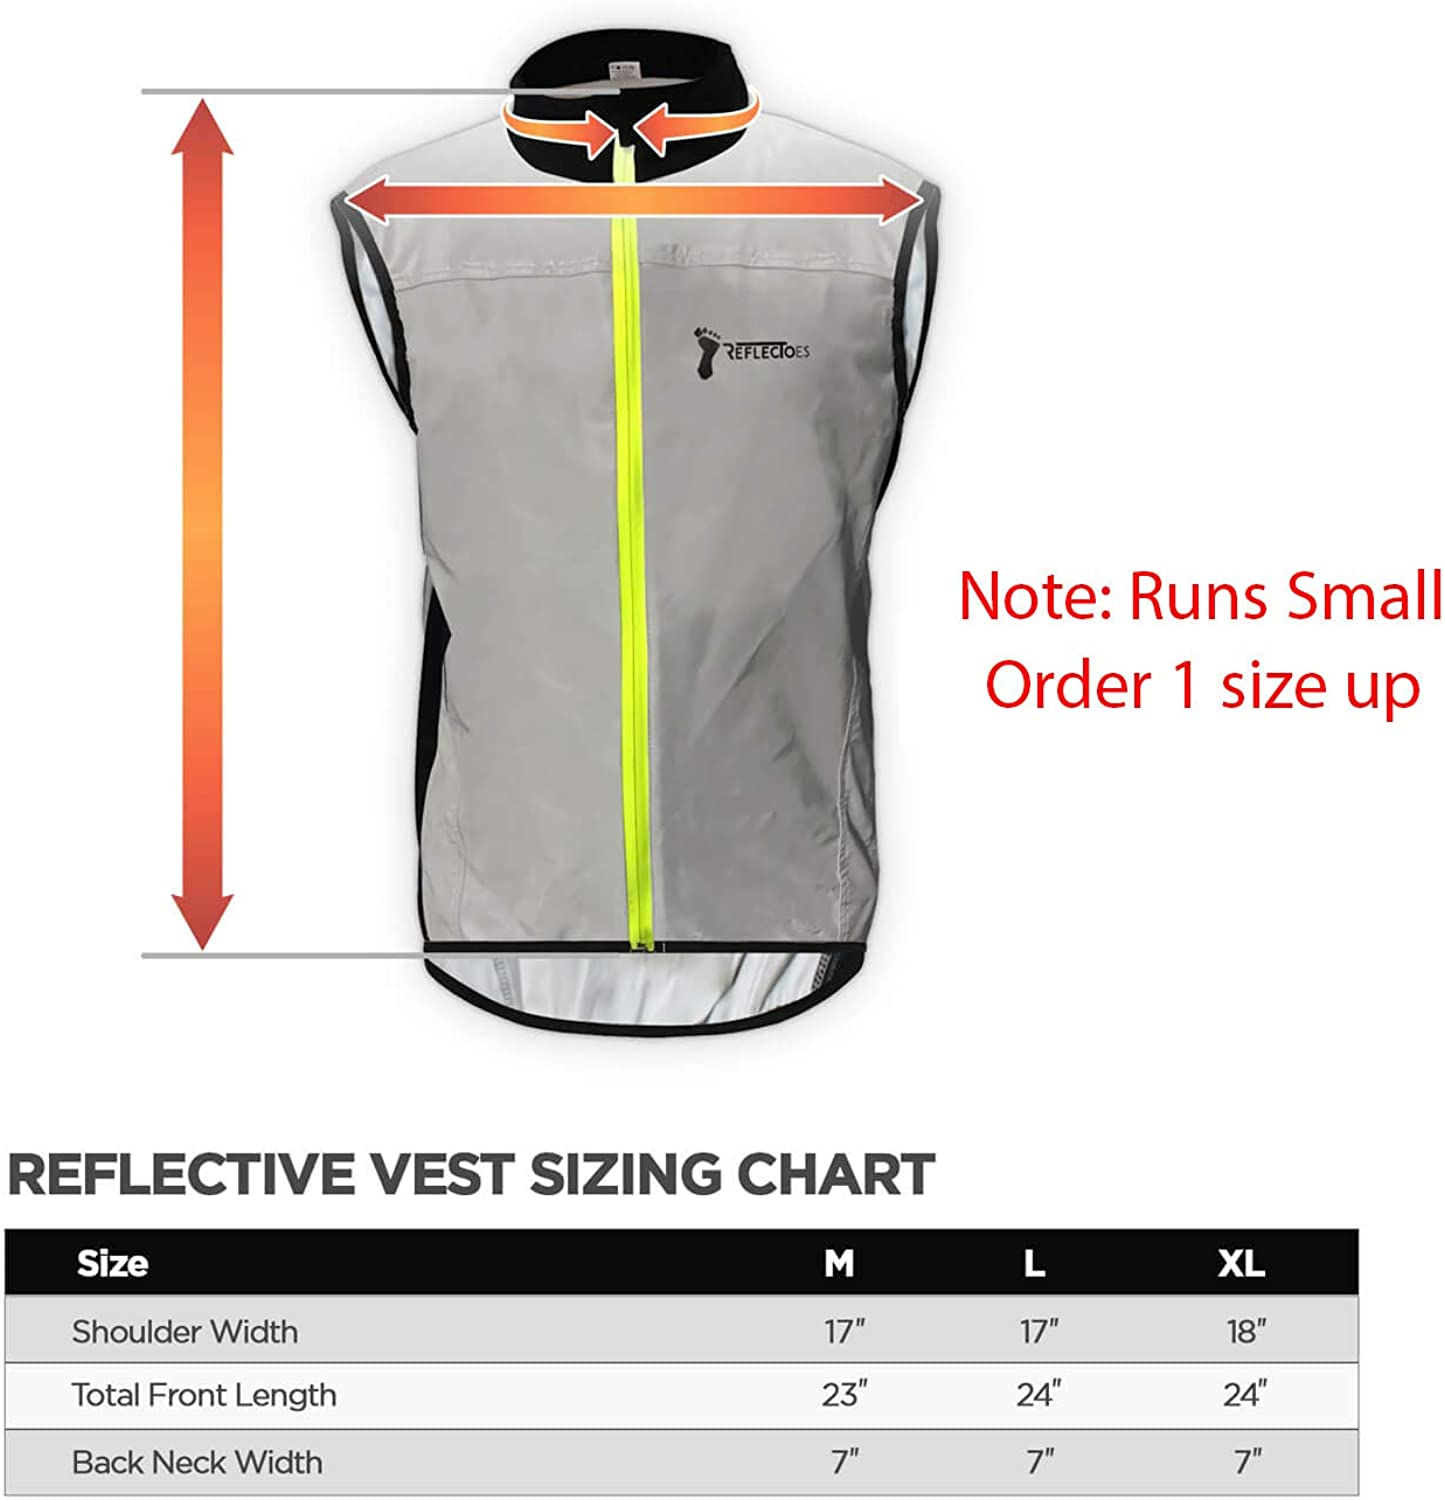 Durable Mens Jacket Designed with Intelligent Stretch Fabric and BioMotion Technology for Maximum Visibility ReflecToes Reflective Windbreaker Vest for Running and Cycling